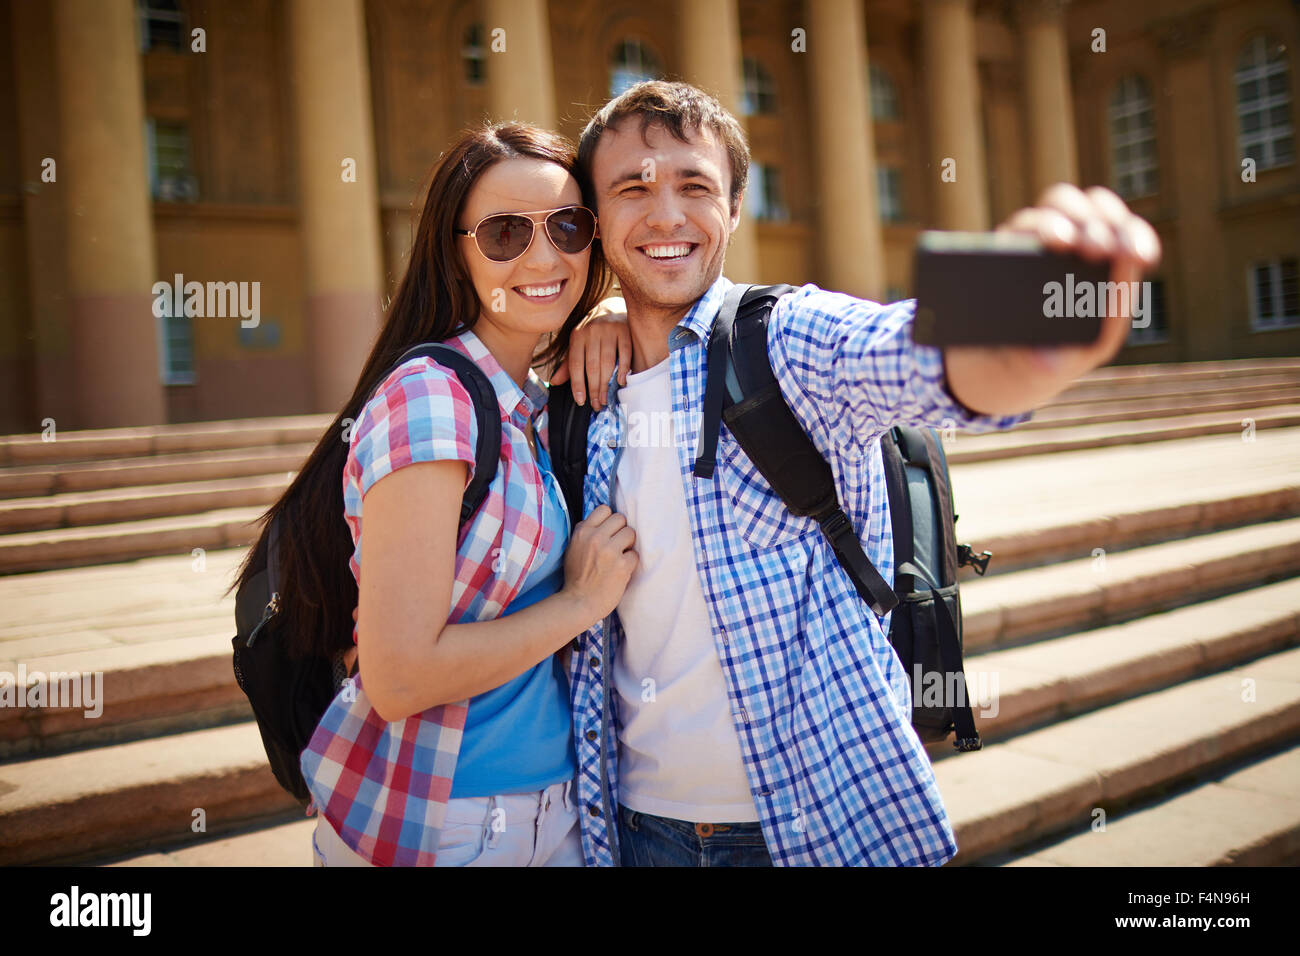 Adventurous young couple making their selfie during journey - Stock Image